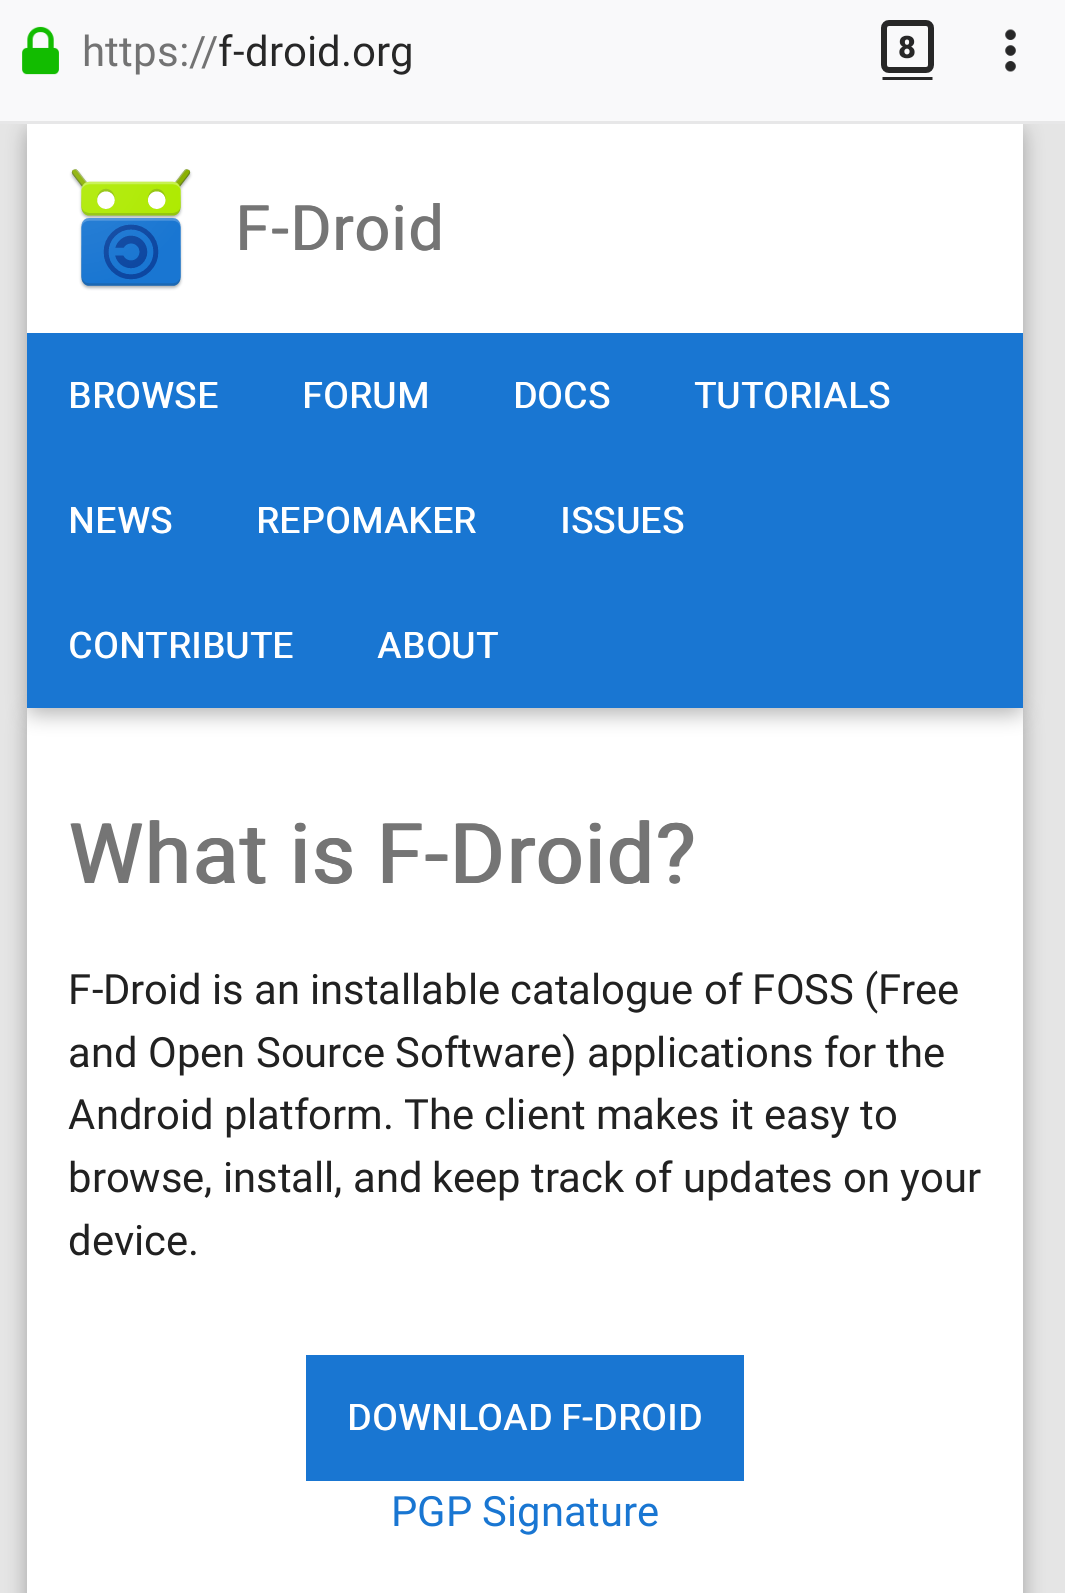 F-Droid-FOSS-Android-1